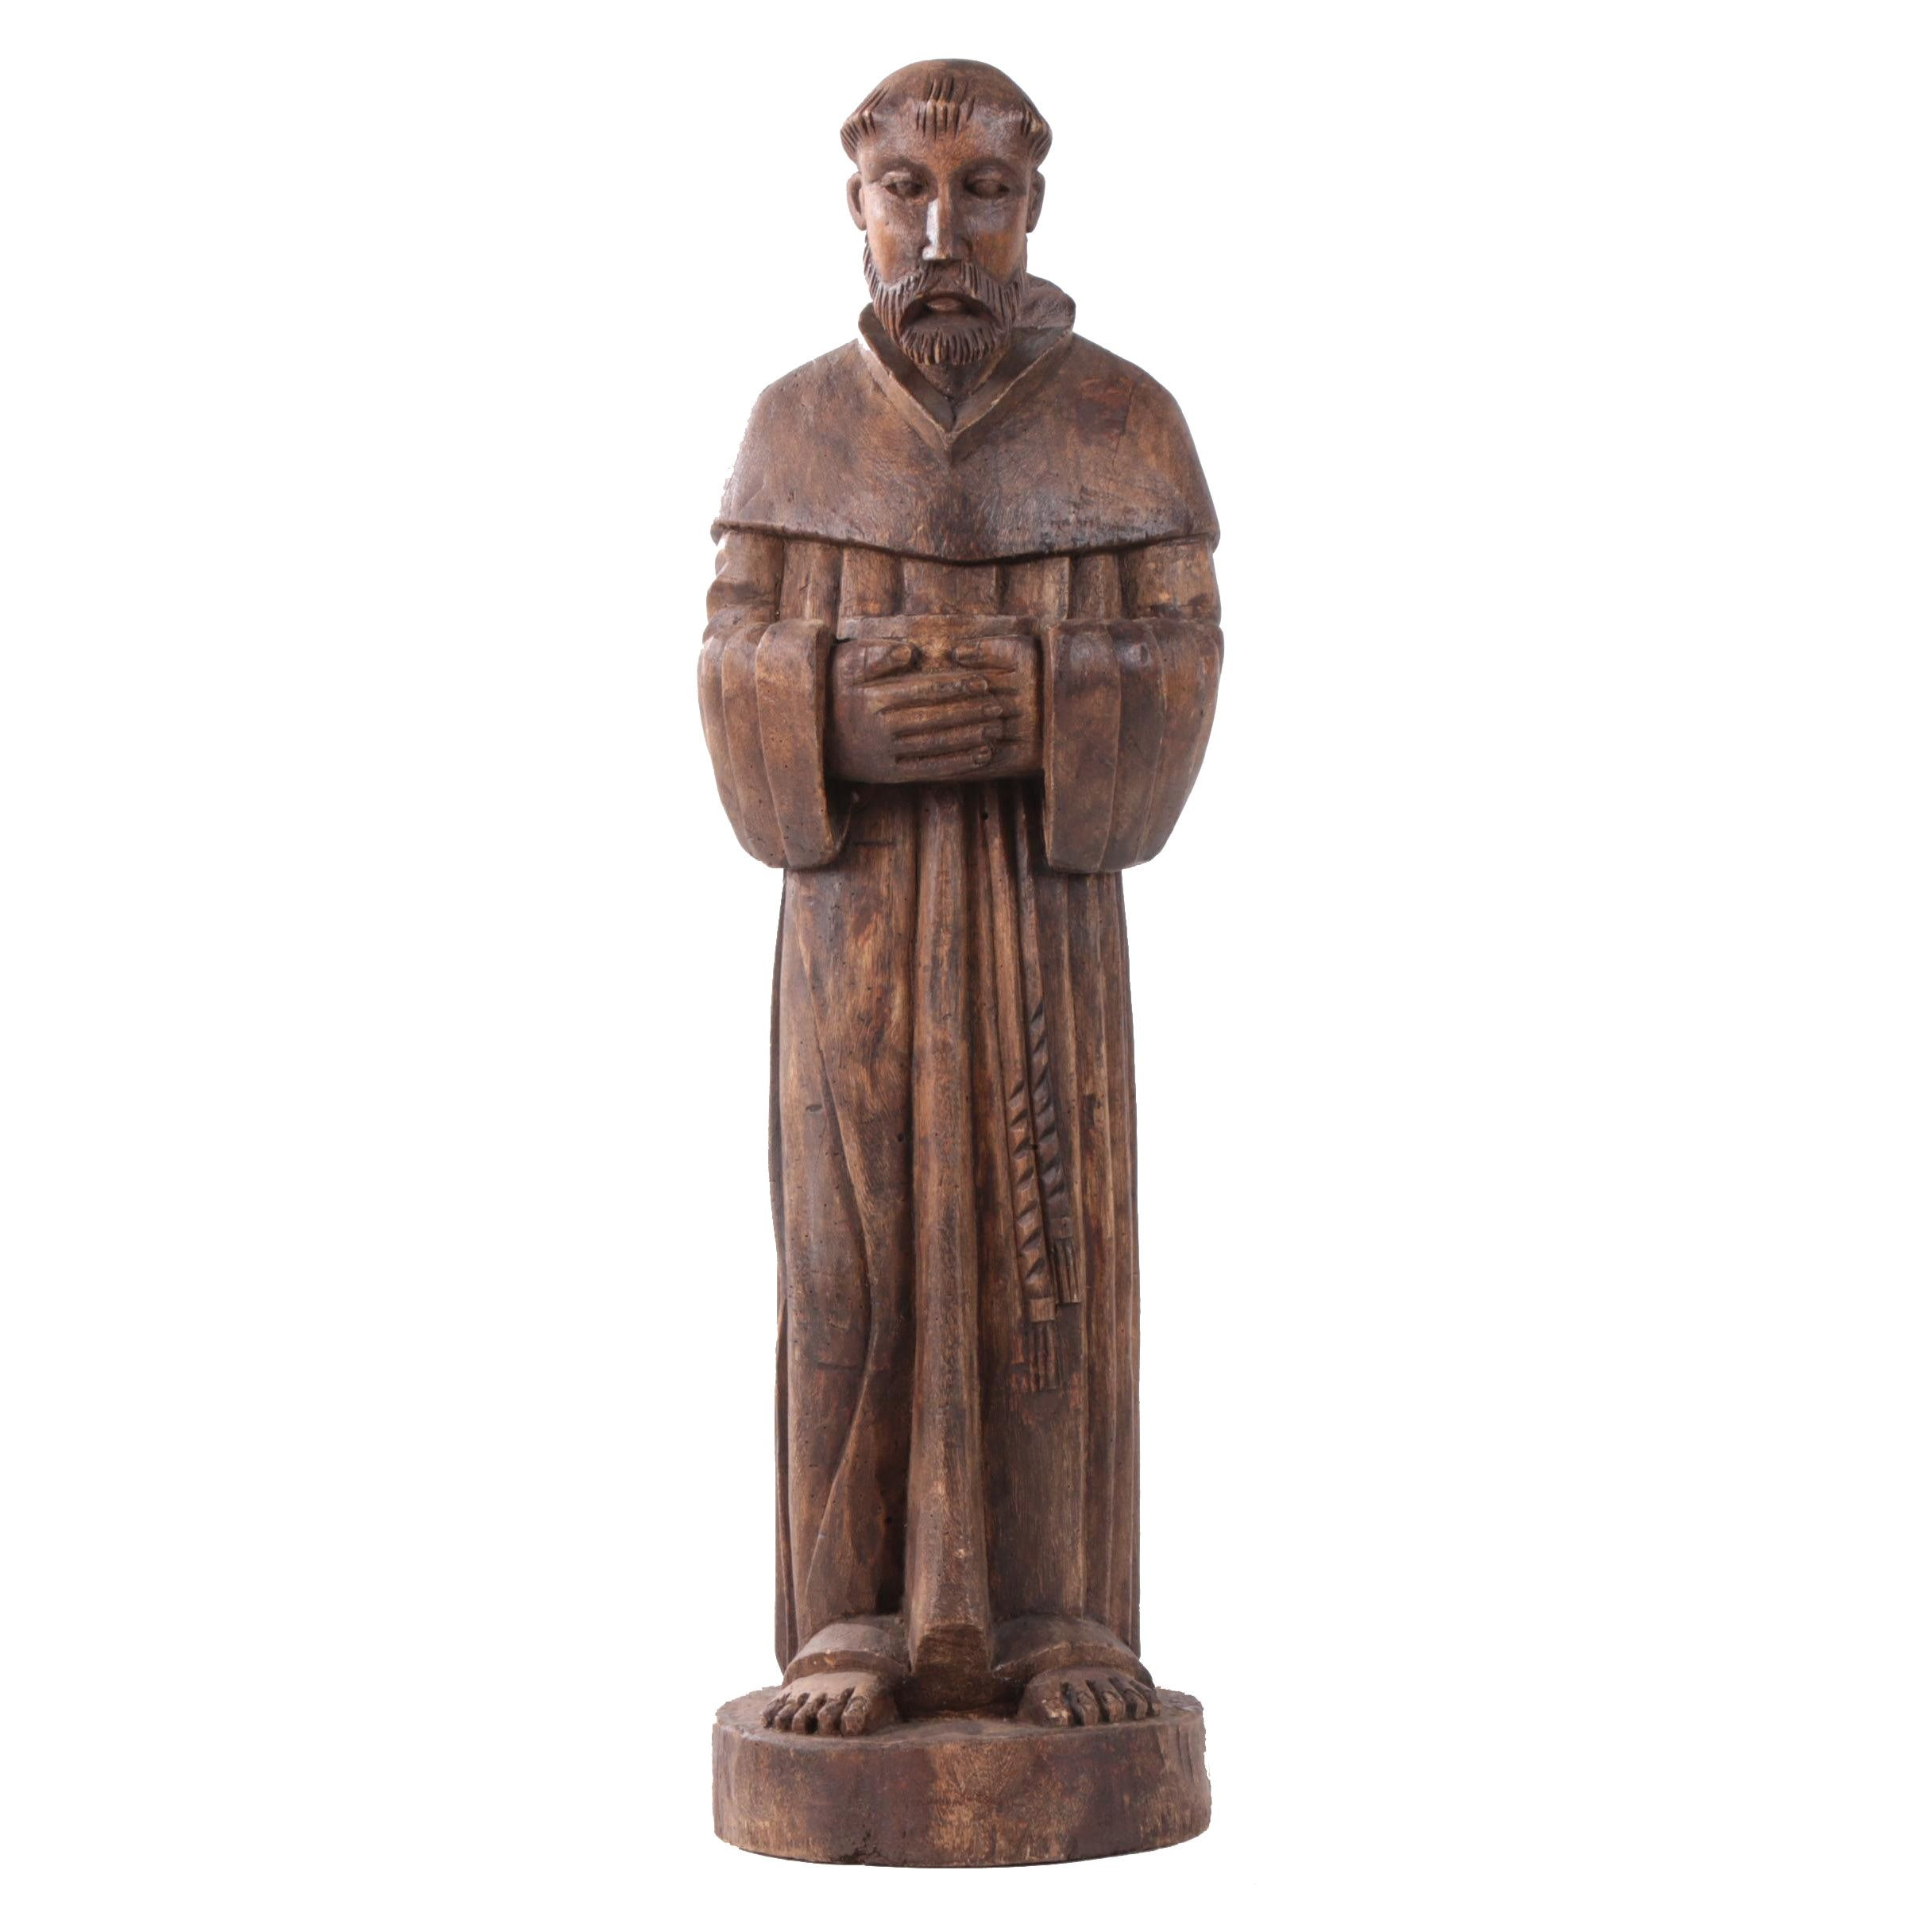 Hand-Carved Wood Sculpture of a Franciscan Friar